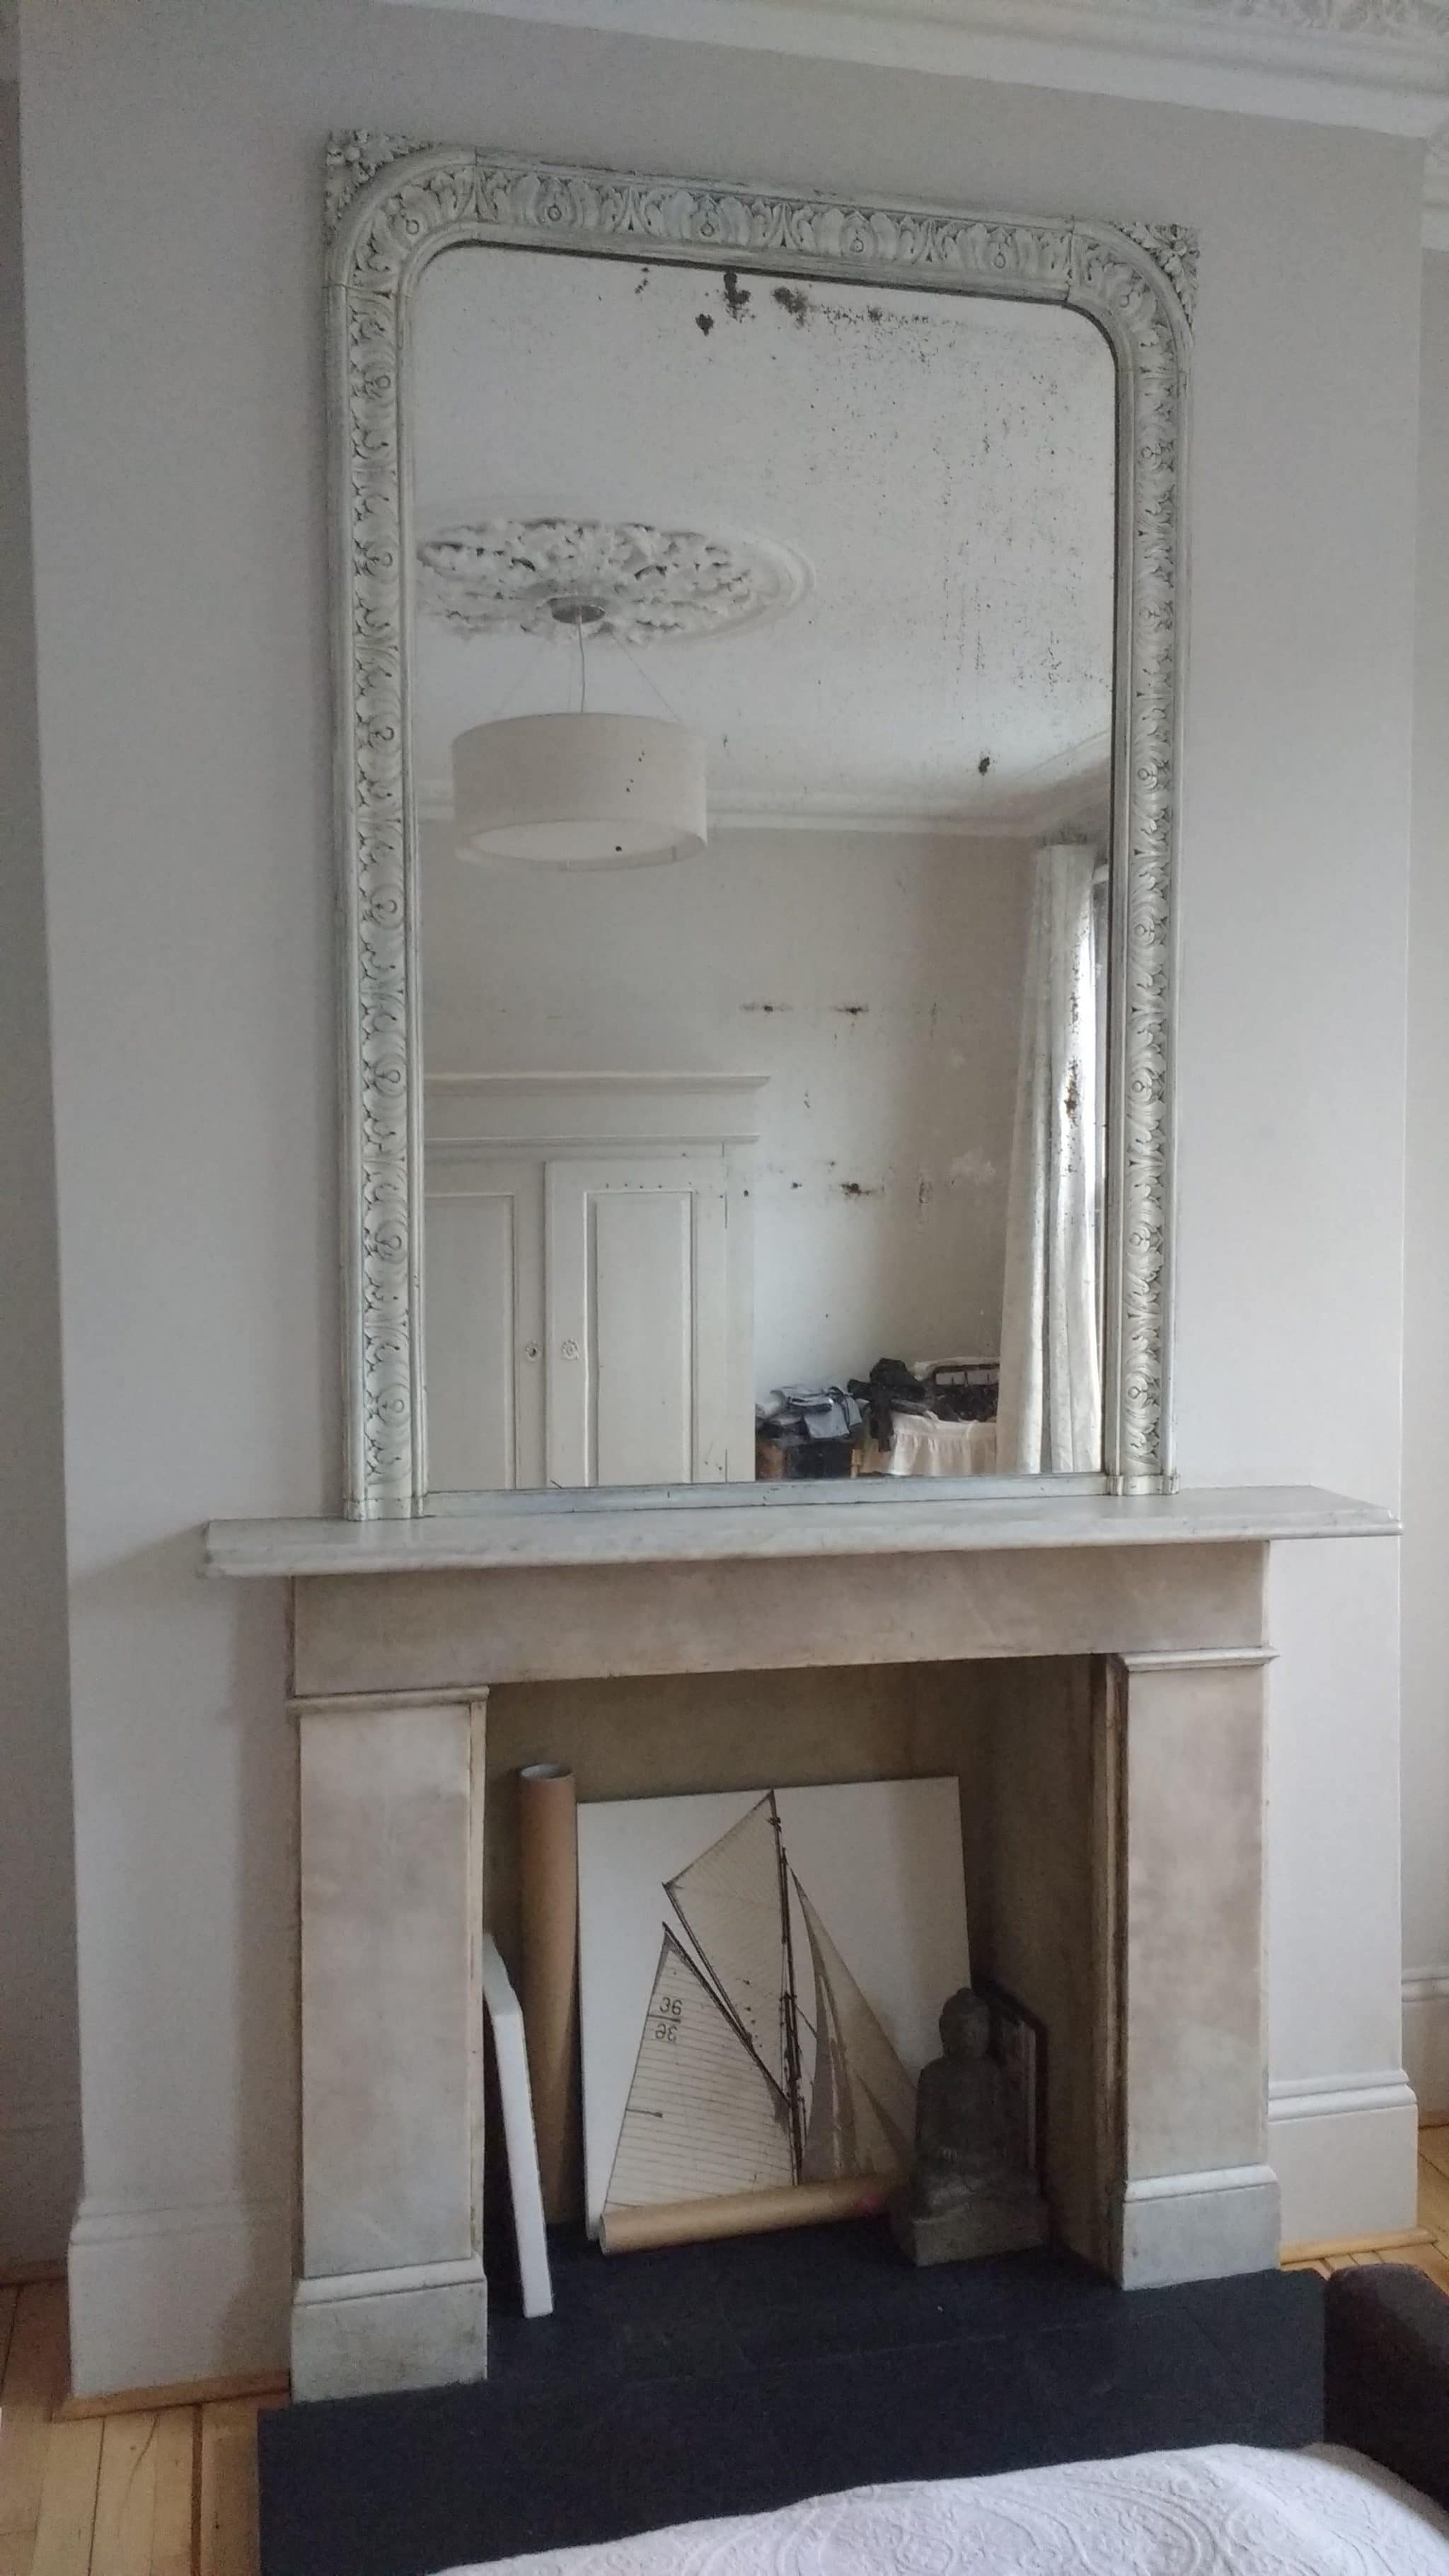 Leaning large mirror above a fireplace in a bedroom in Ladbroke Grove.